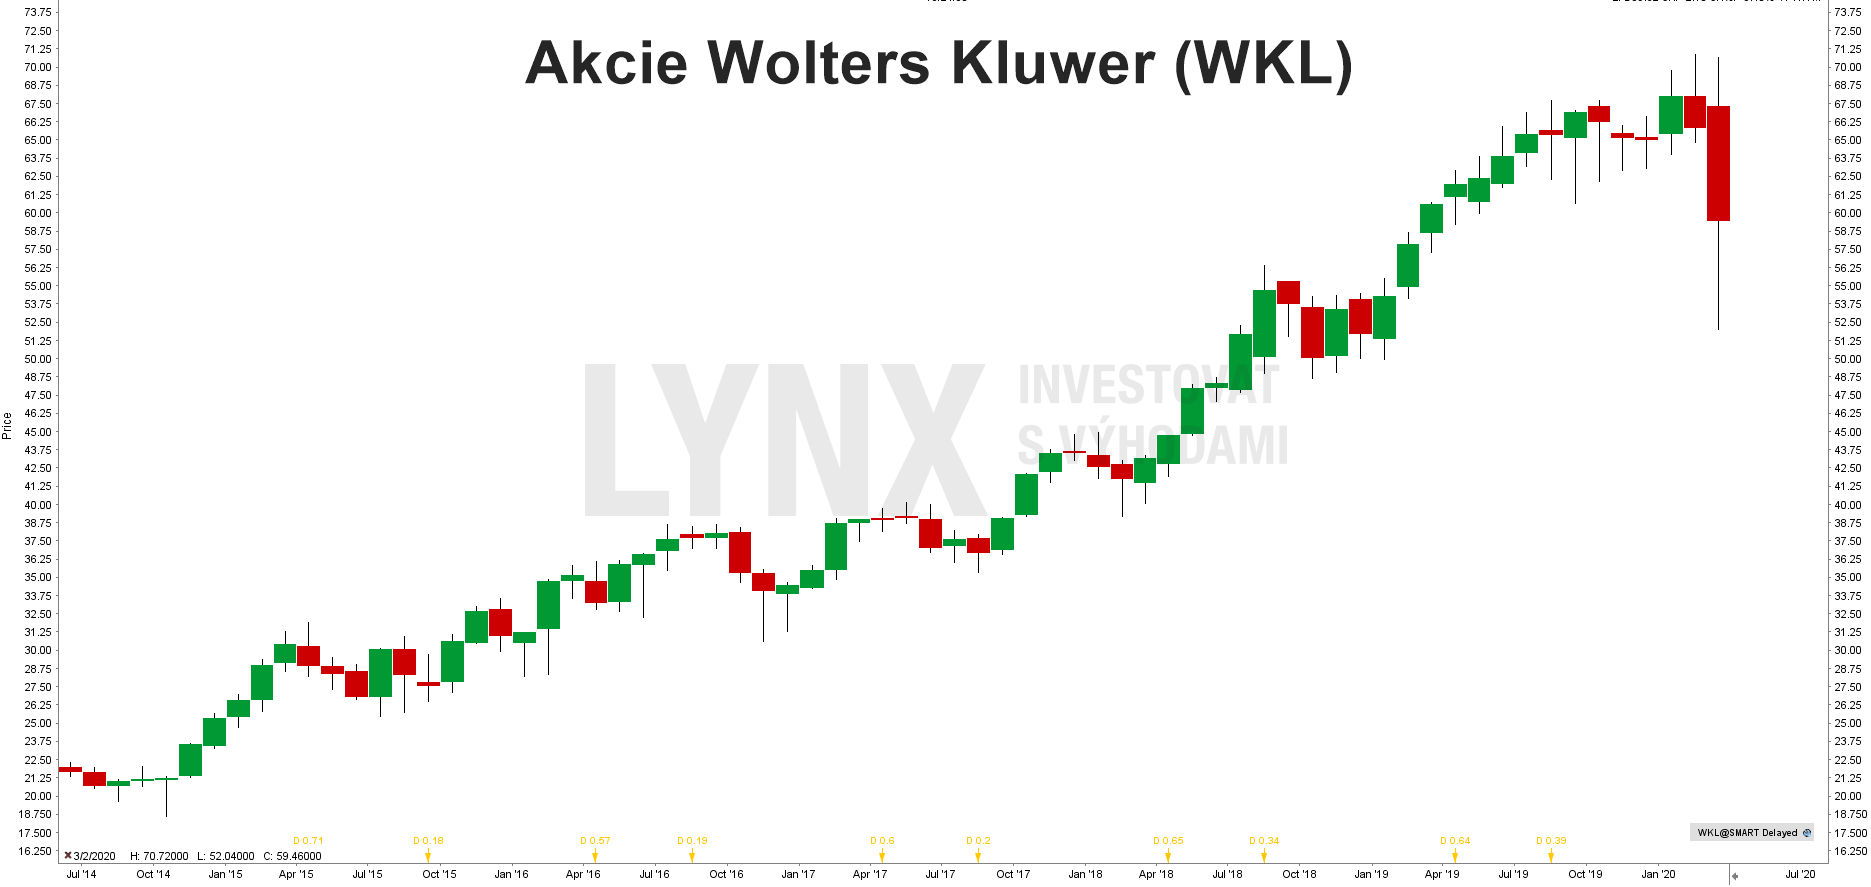 Akcie Wolters Kluwer (WKL)